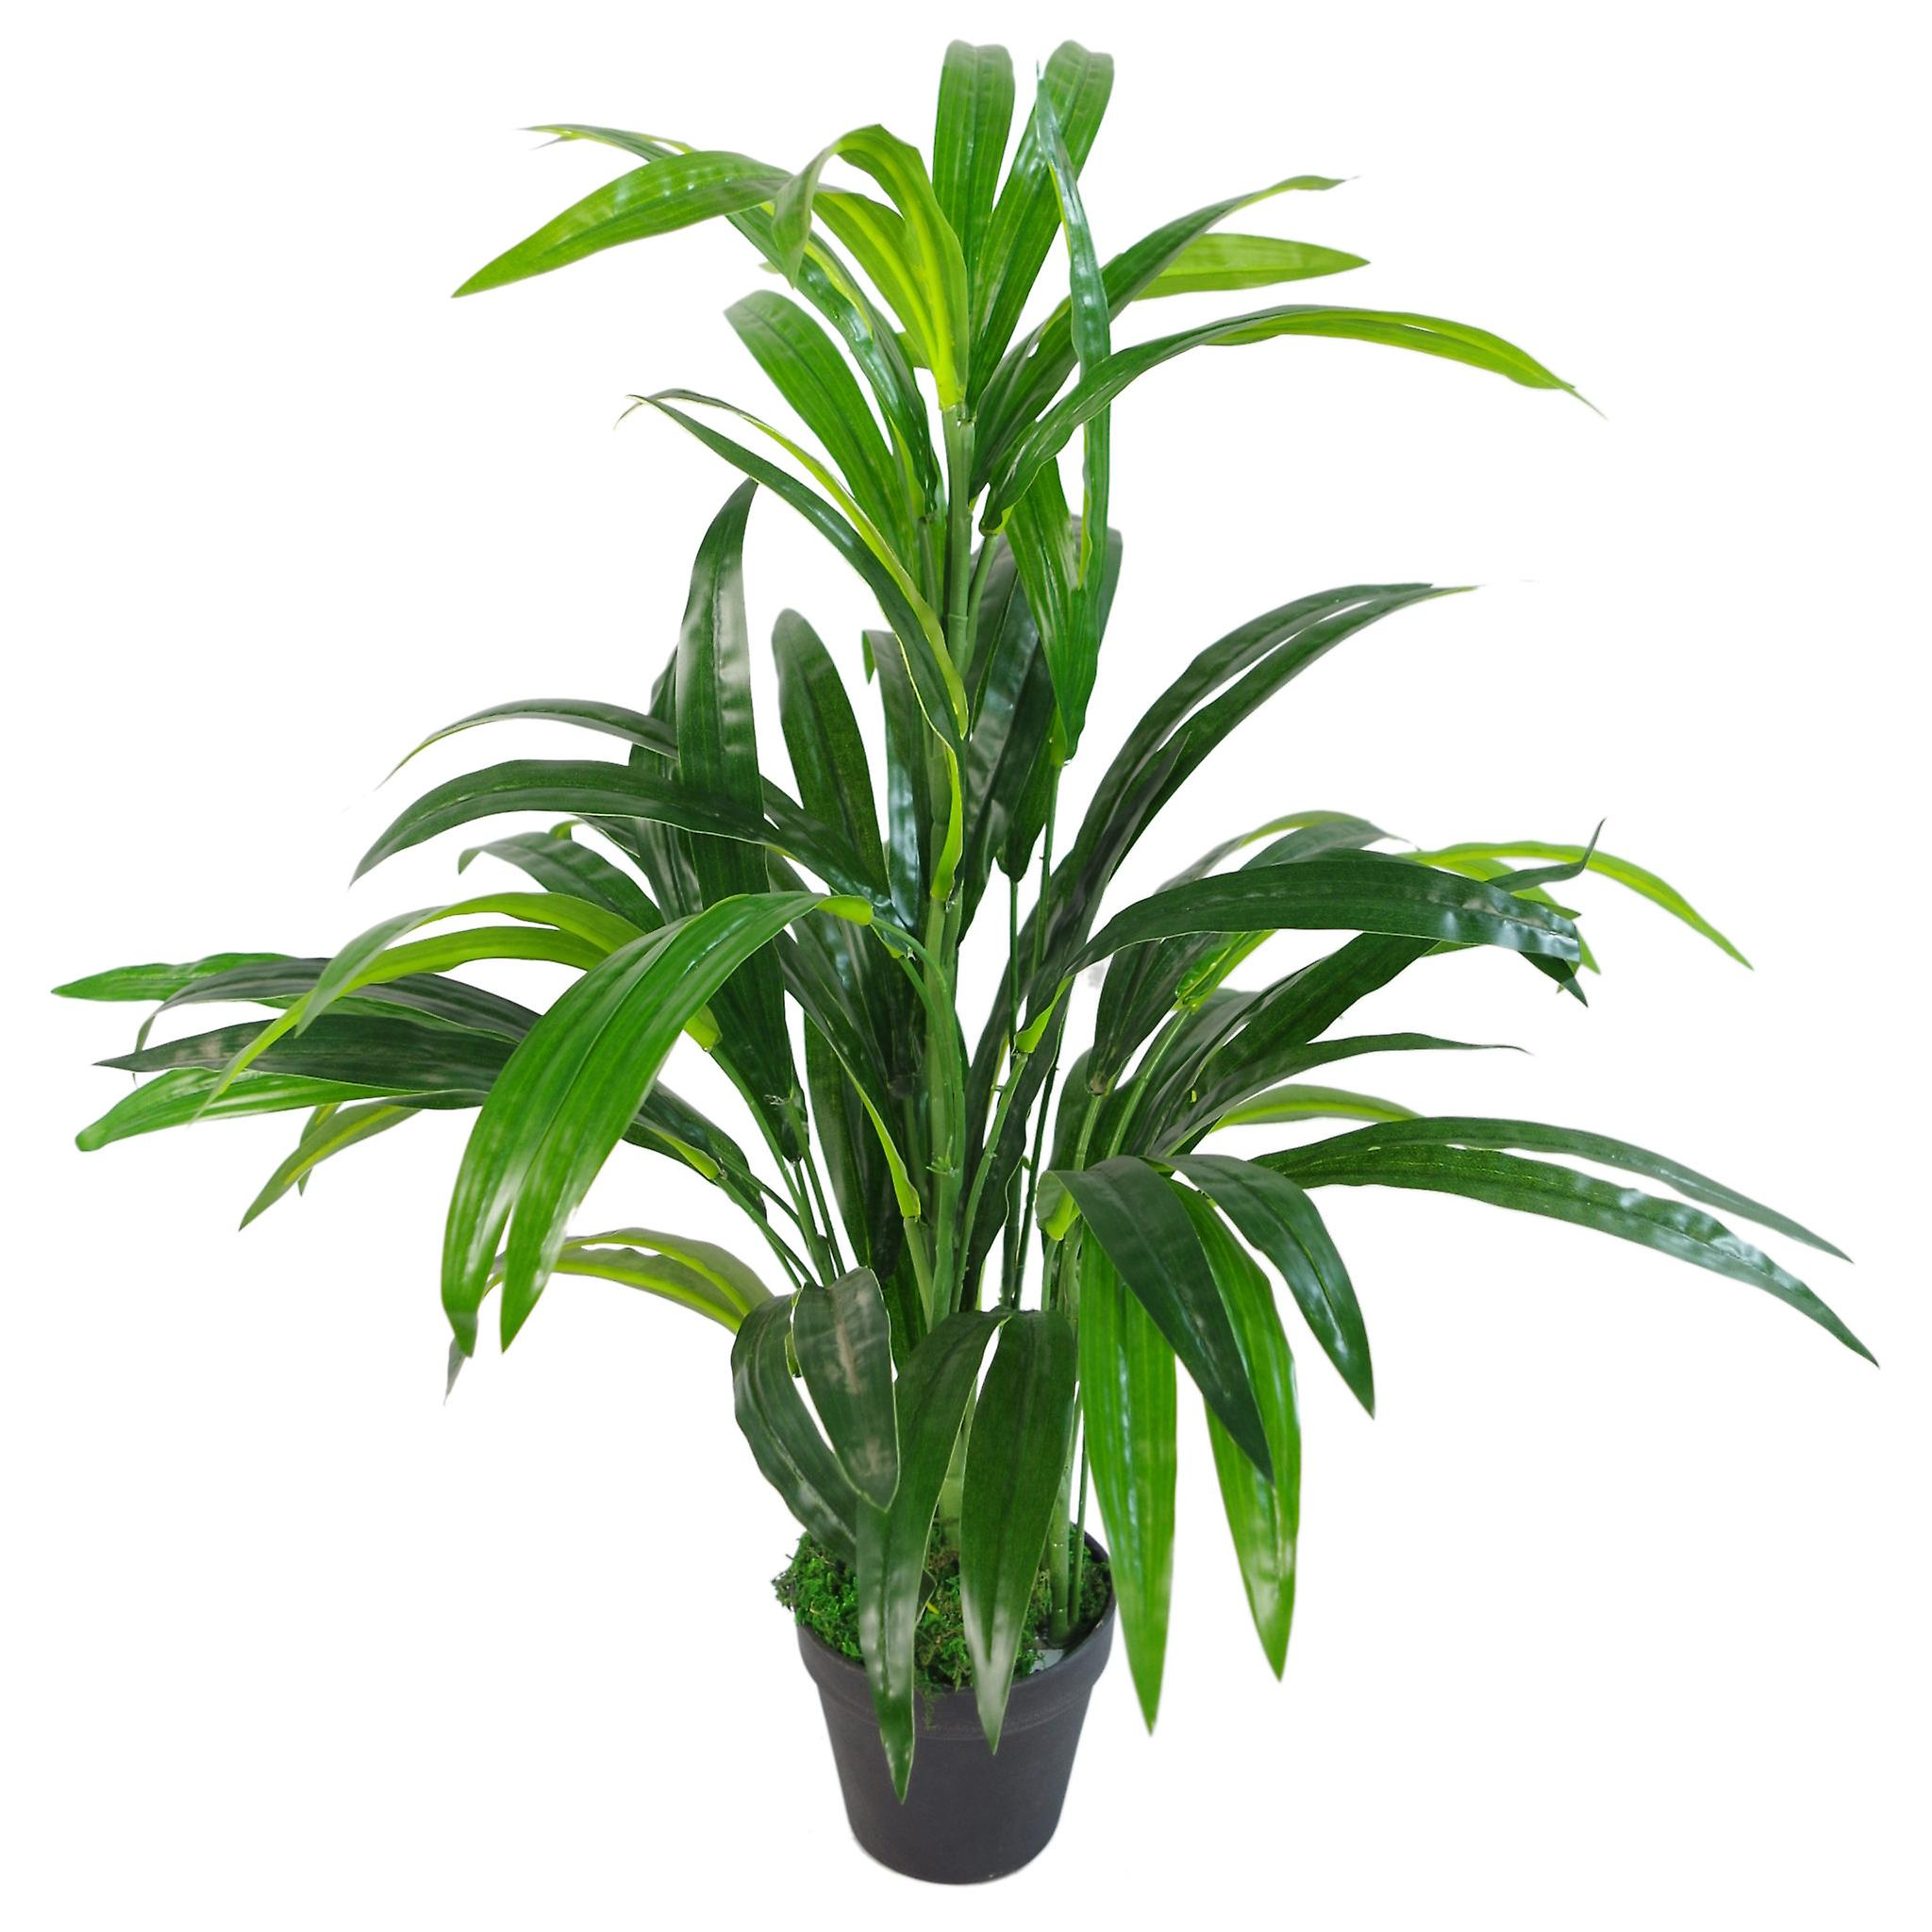 65cm Artificial Bamboo Leaf Shrub with Brushed Copper Planter